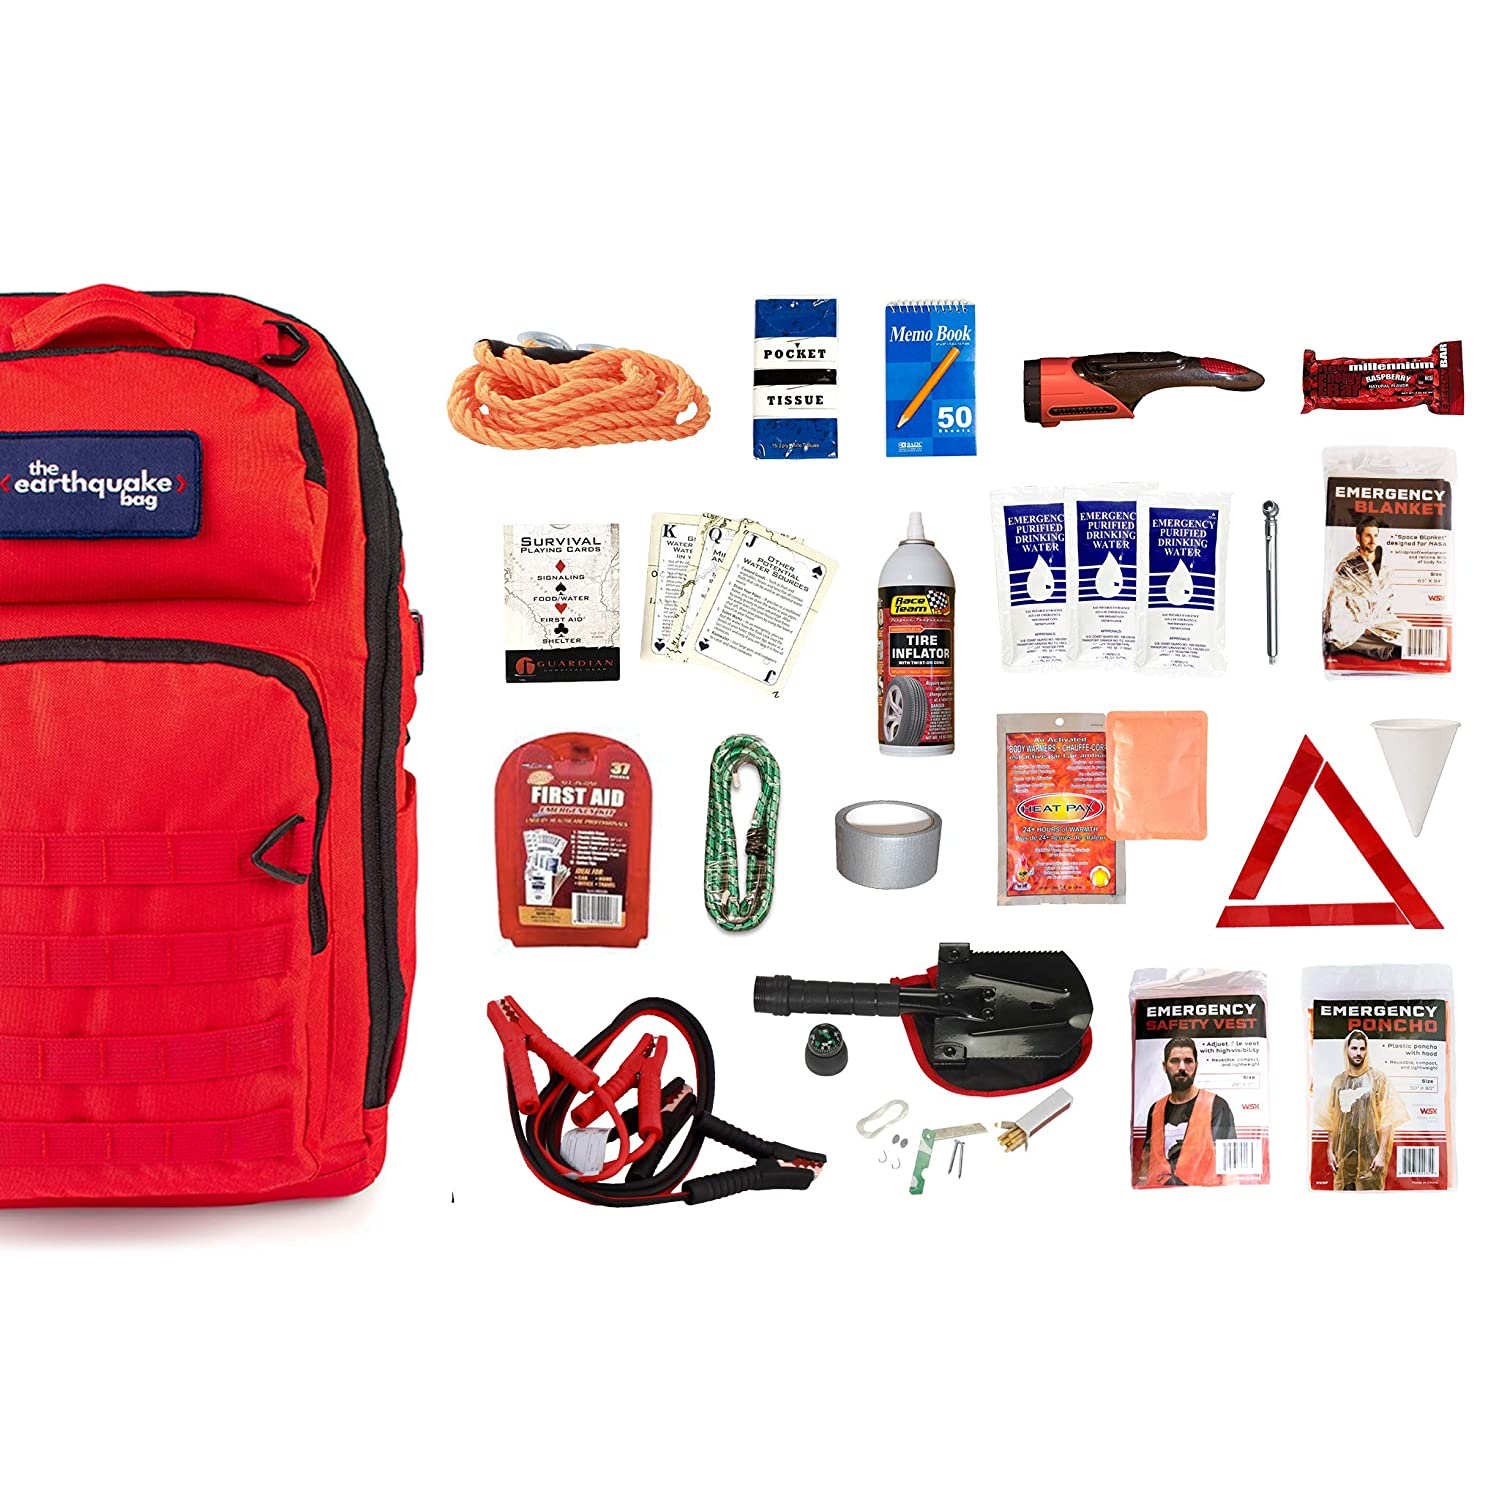 1 Person Complete Car Emergency Kit - Stay Safe on The Road no Matter What Comes up